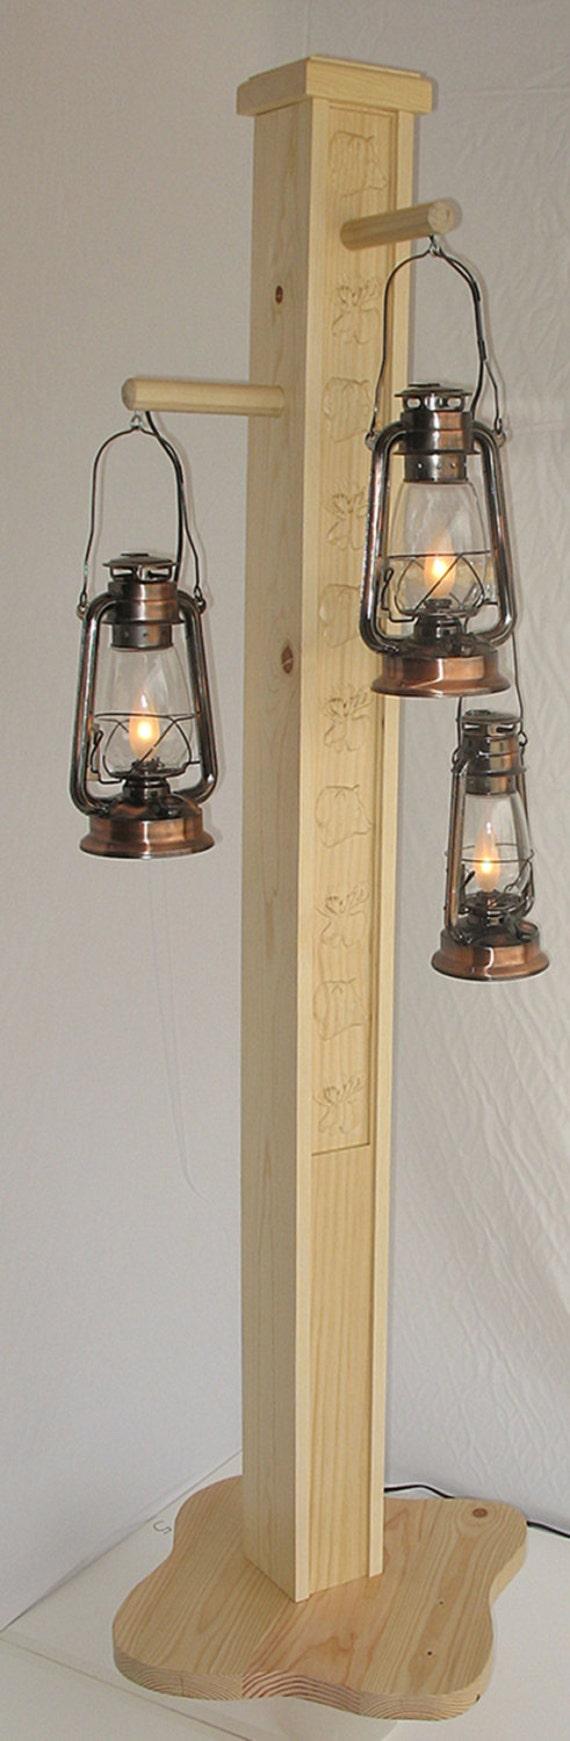 Rustic Floor Lamp With Old Fashioned Electrified By